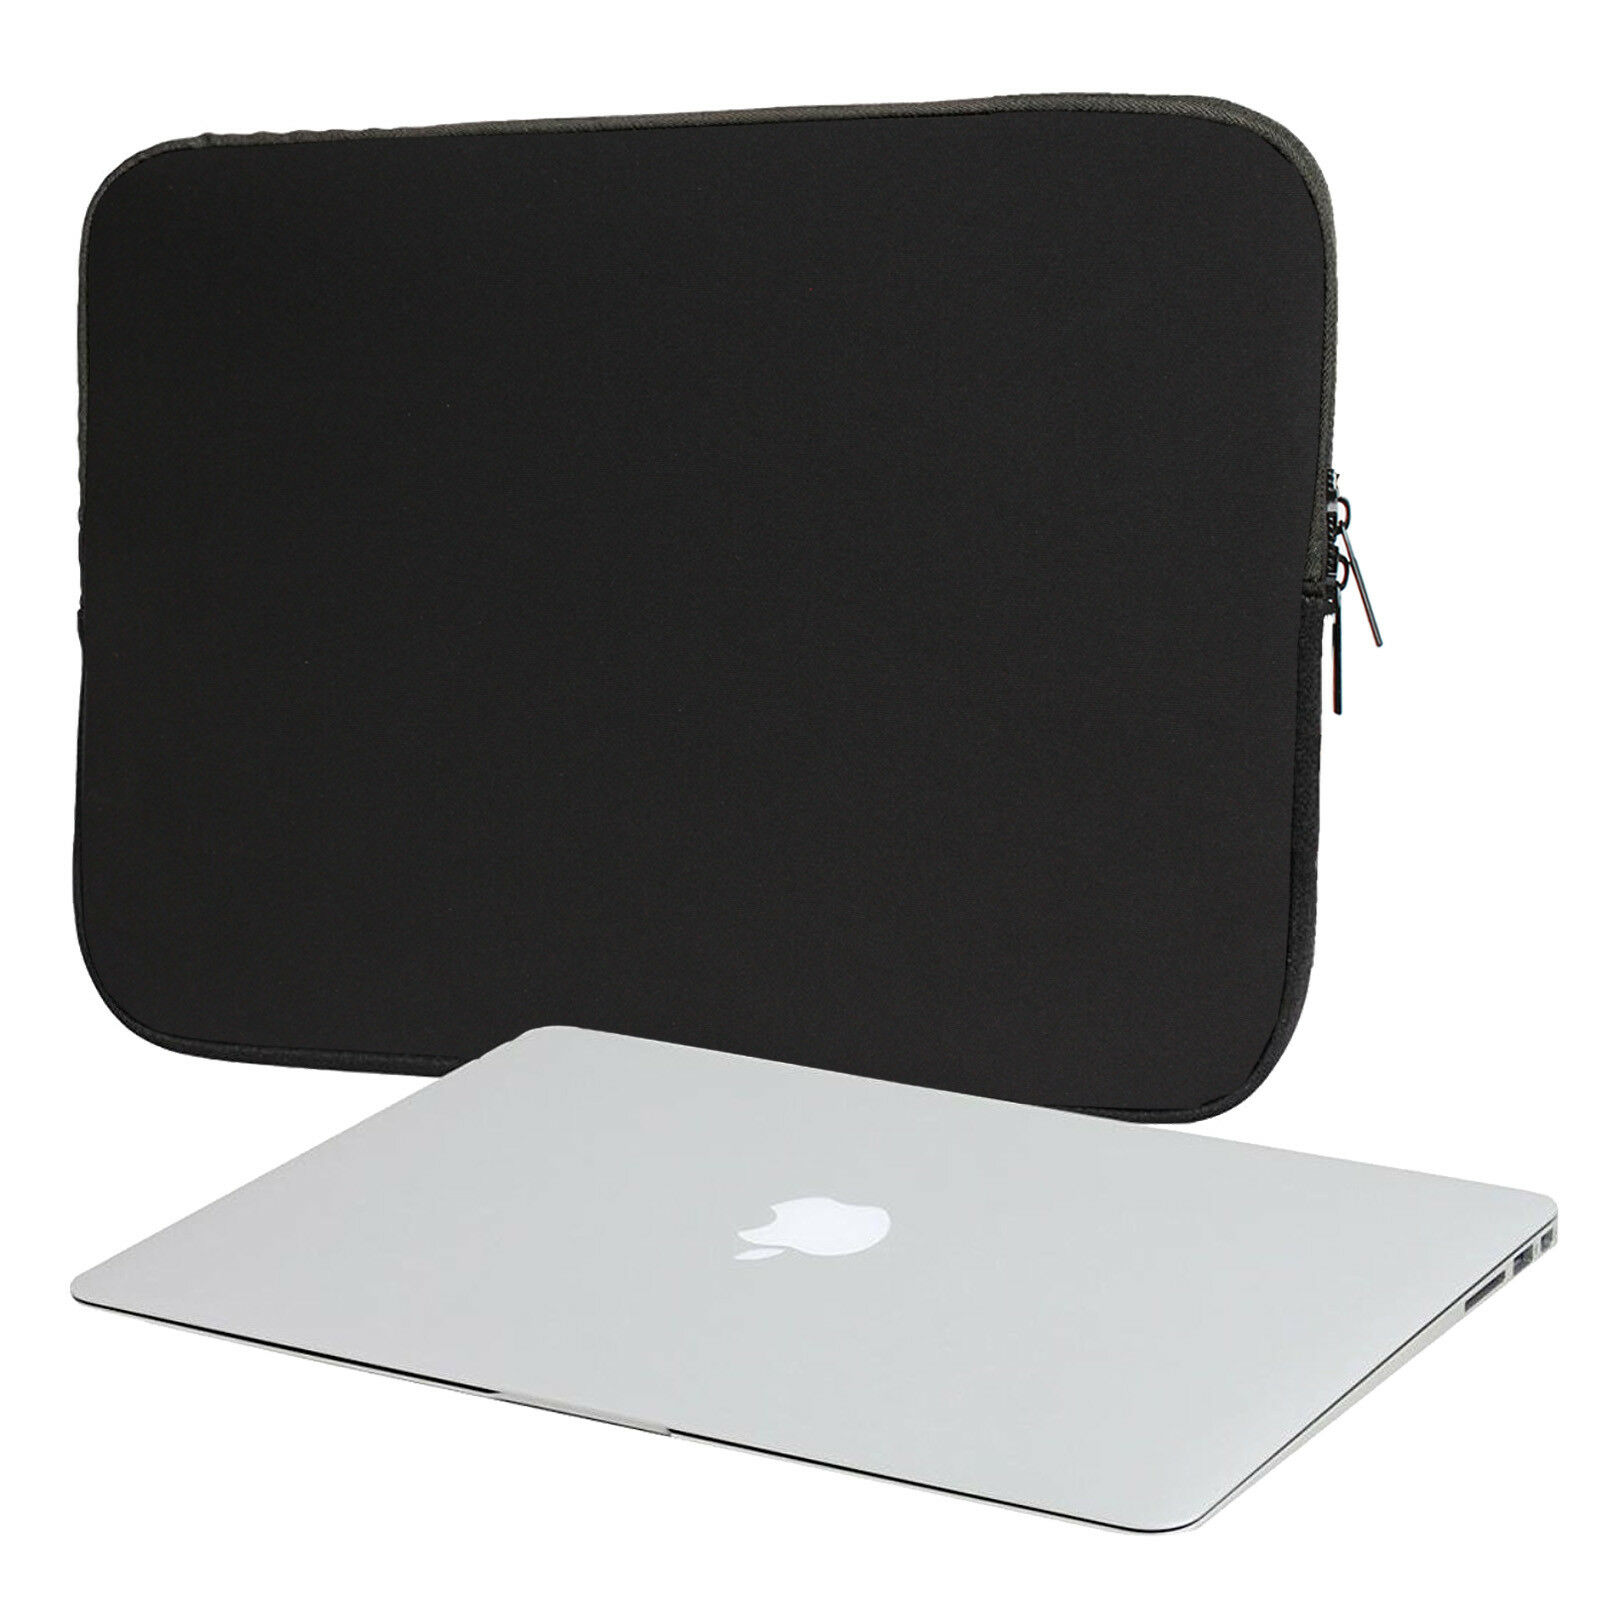 13/15inch Laptop Notebook Sleeve Case Bag Cover For Apple Ma